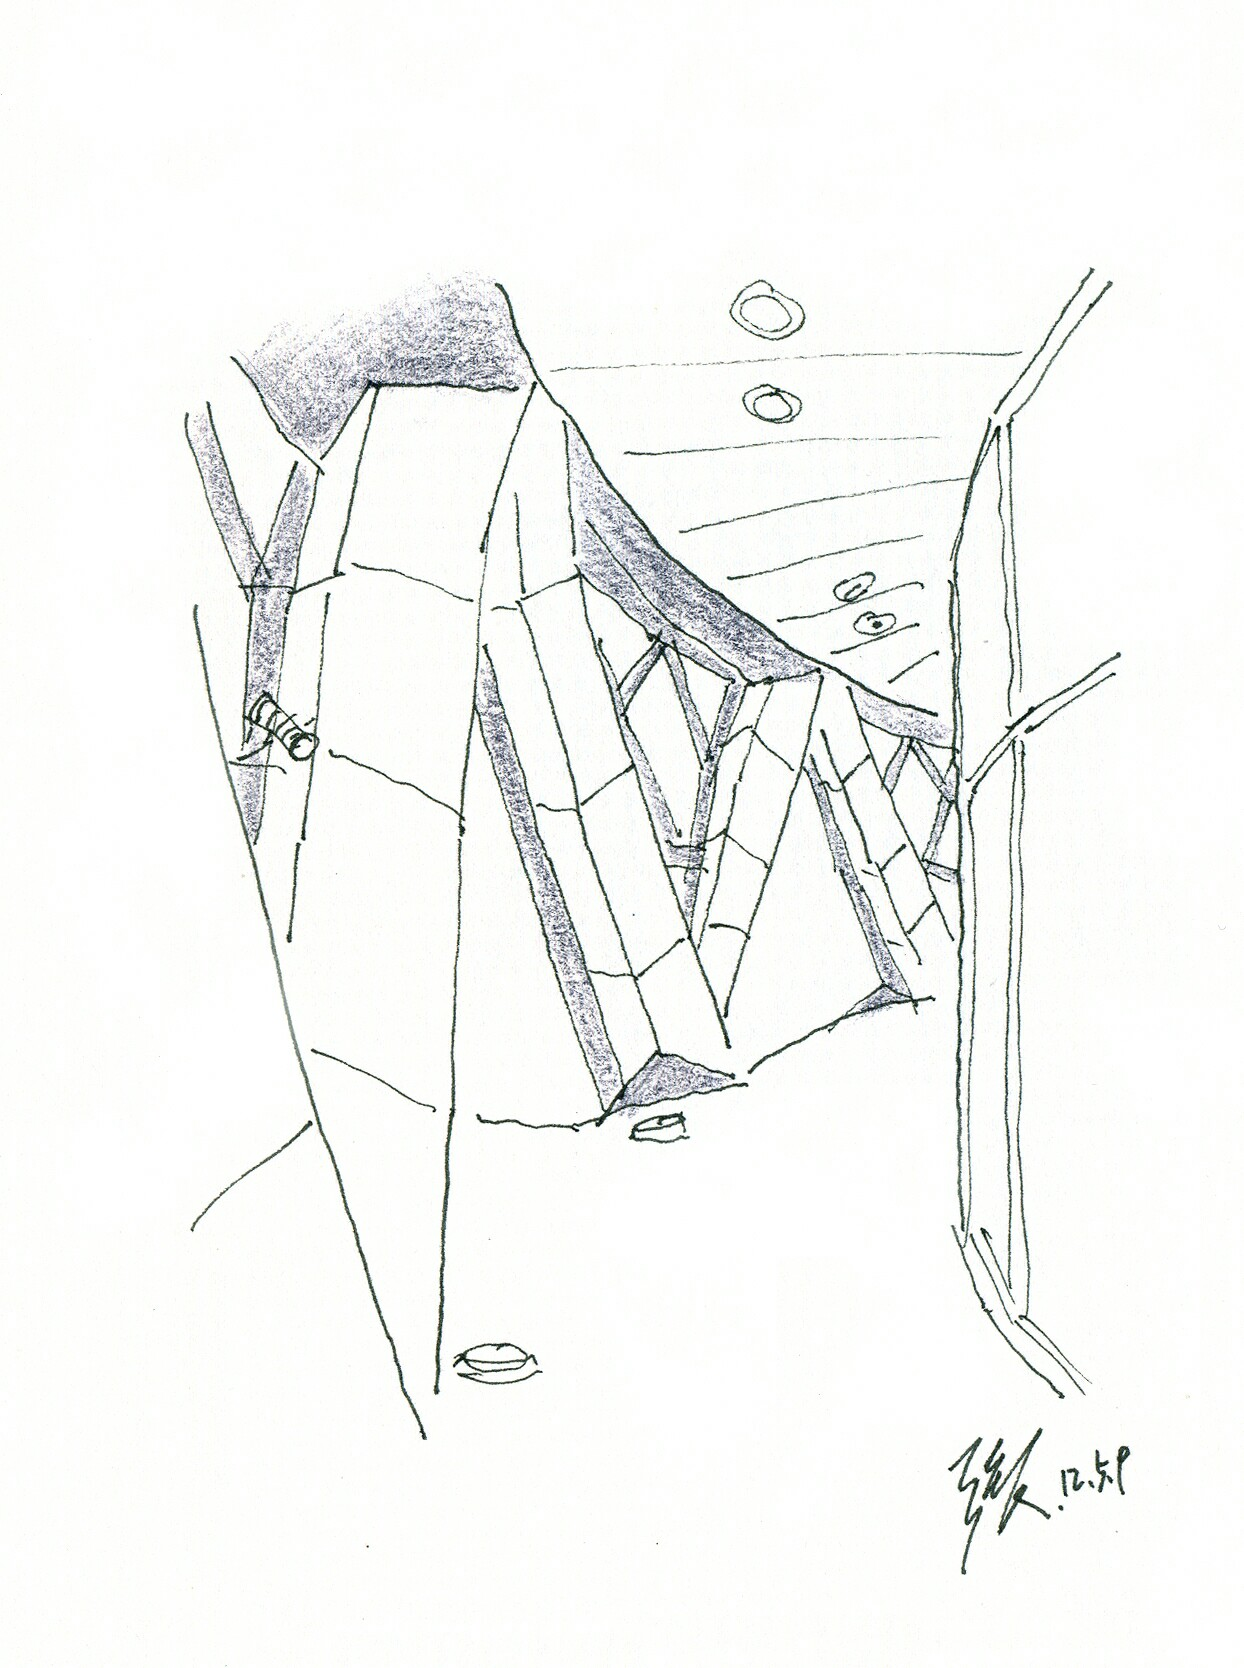 Drawn axe sketch At Aerin Norman by and